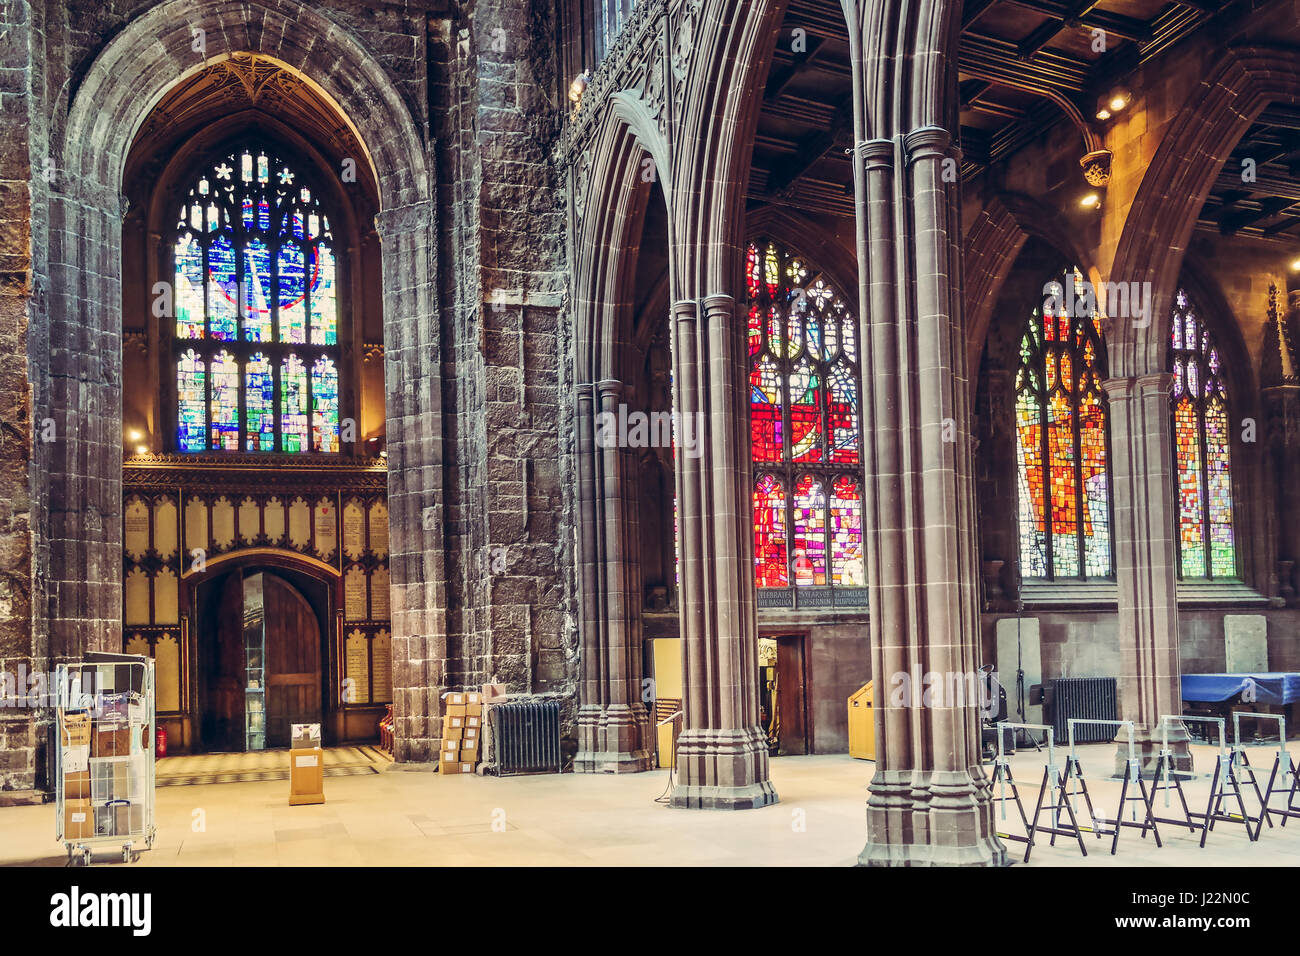 Interior of the Manchester Cathedral with impressive mosaic windows and gothic decorations, England, UK - Stock Image